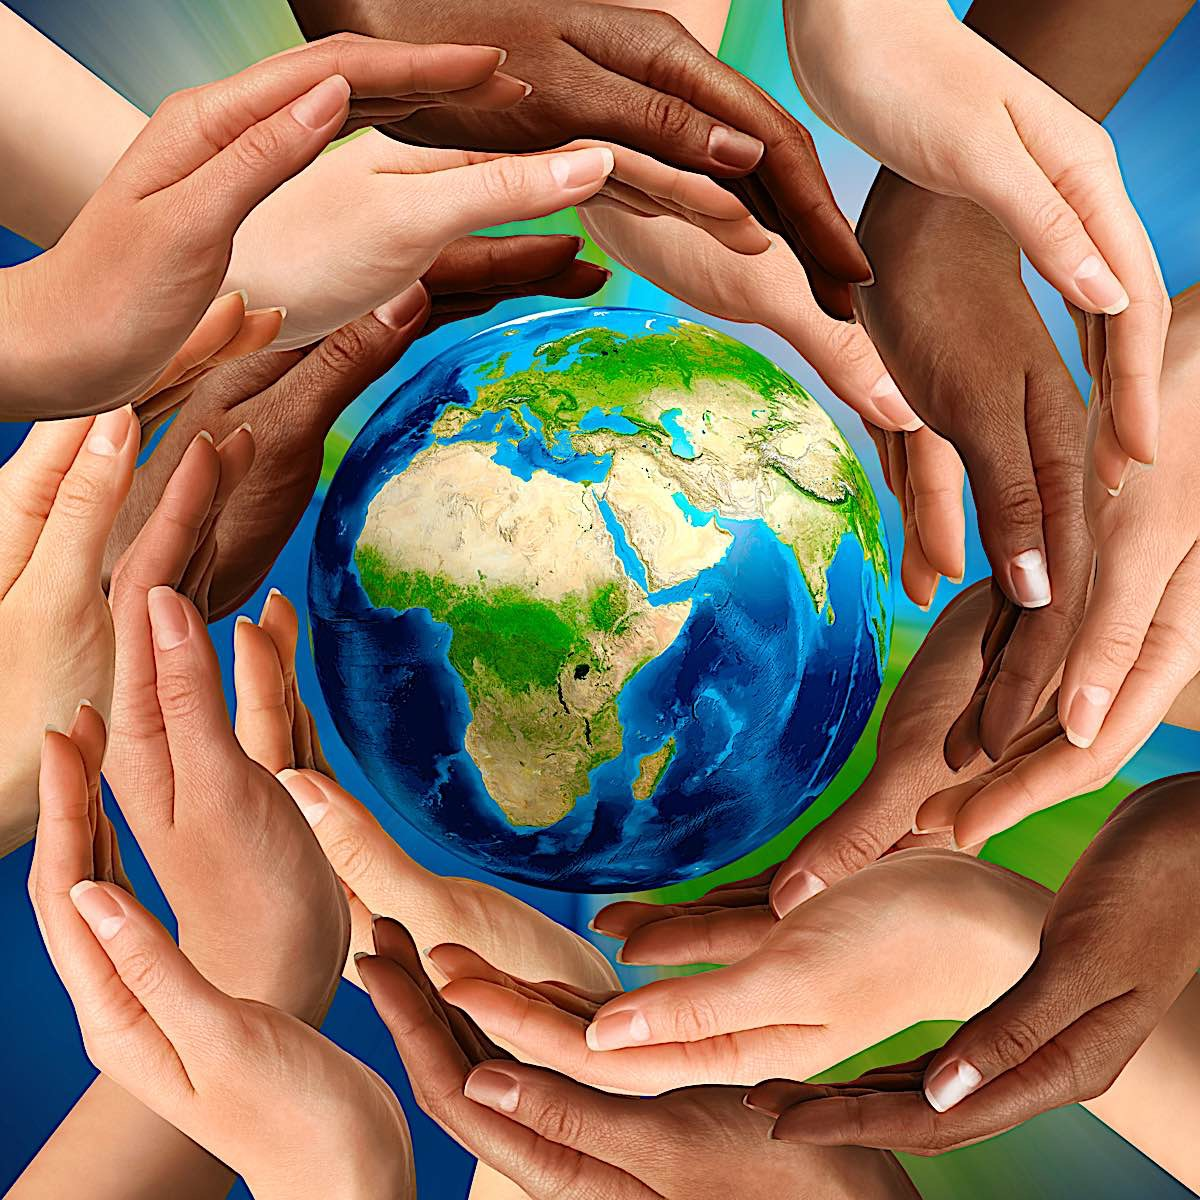 Buddha Weekly Earth and caring hands Buddhism